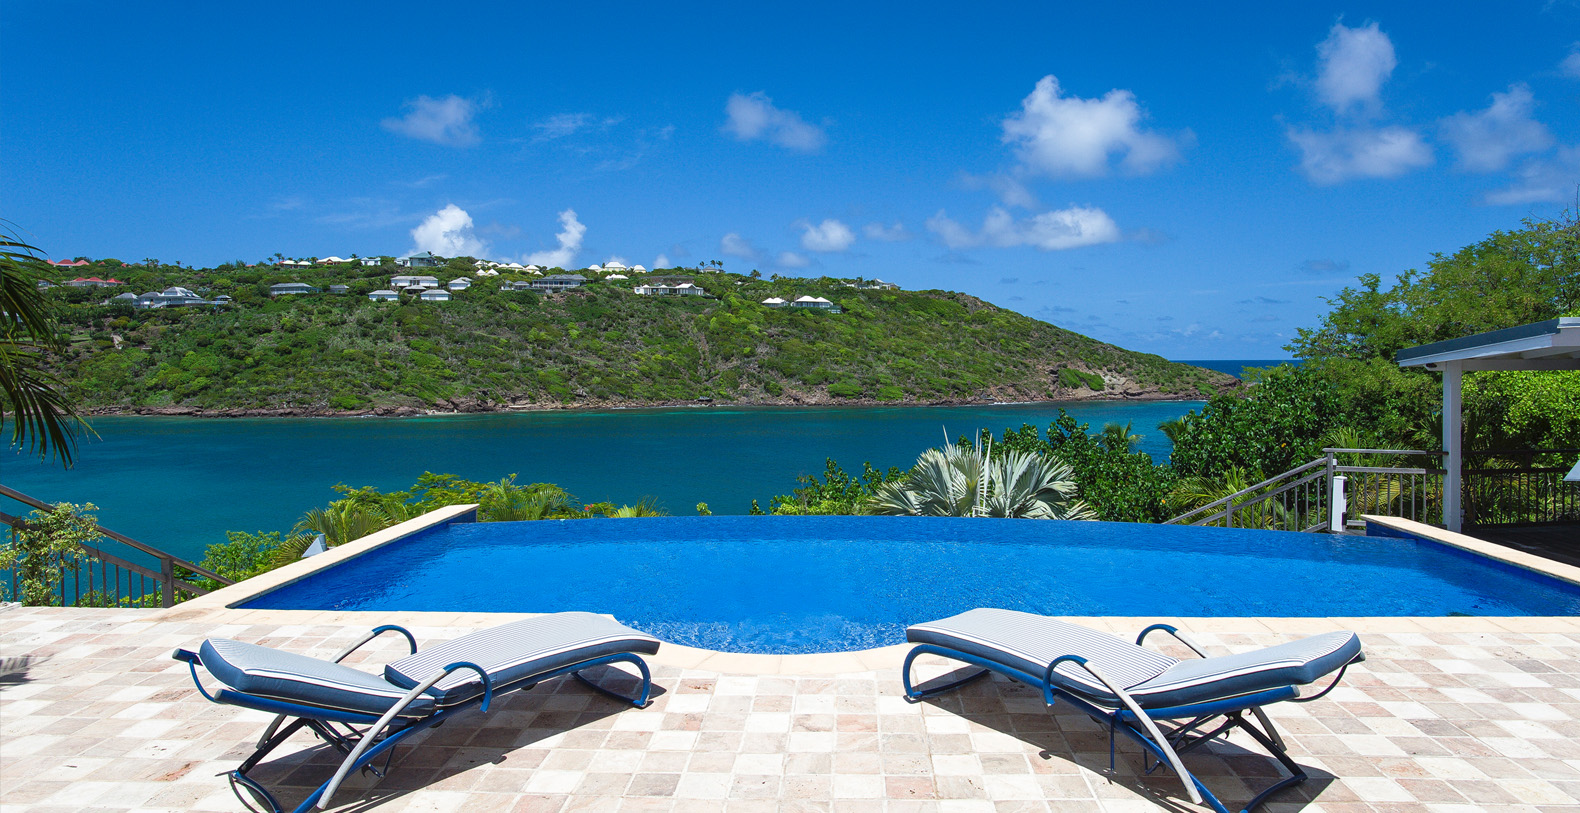 Captiva marigot st barts vacation rental home caribbean for St barts in the caribbean